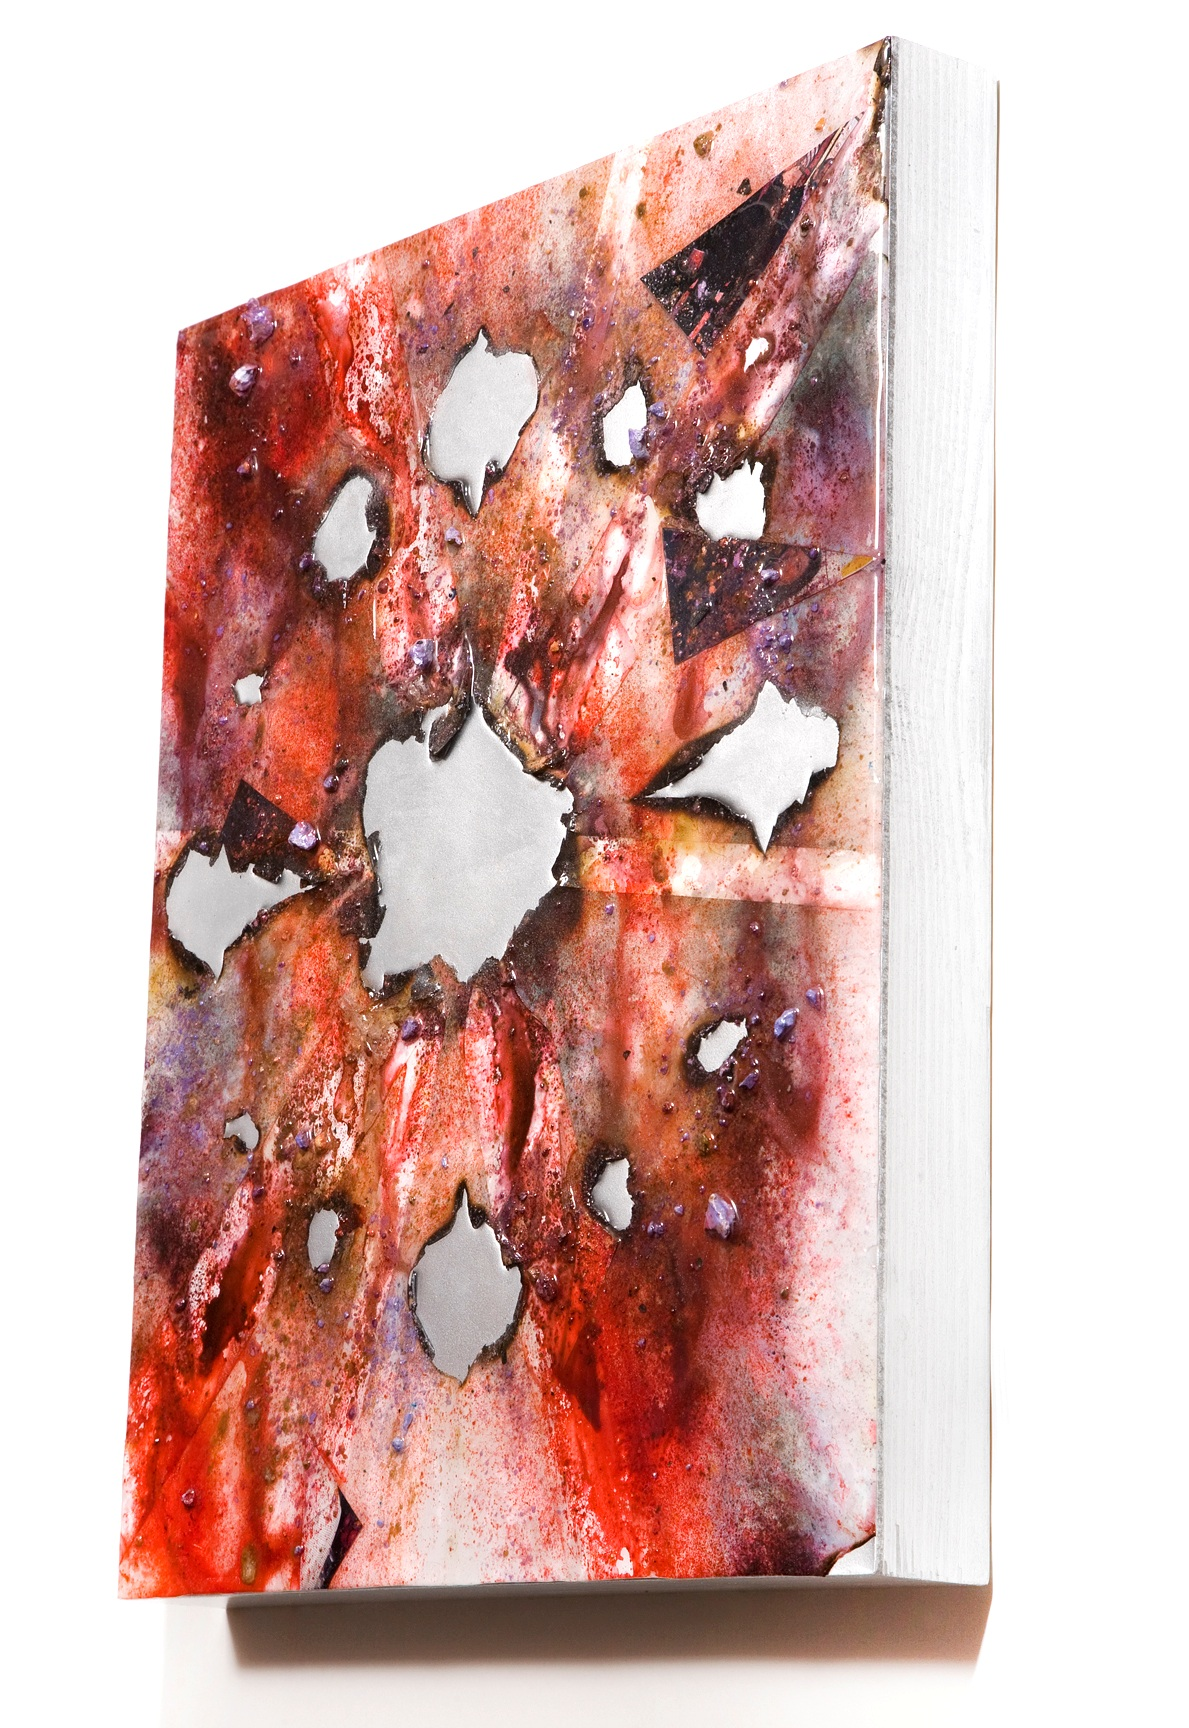 """SERIE I, Untitled SIDE VIEW (white/silver), photographs, photo background paper, chalk, spray paint, packing tape, powder drink, glue, epoxy resin on wood panel, 16""""x20""""x2"""", 2018"""